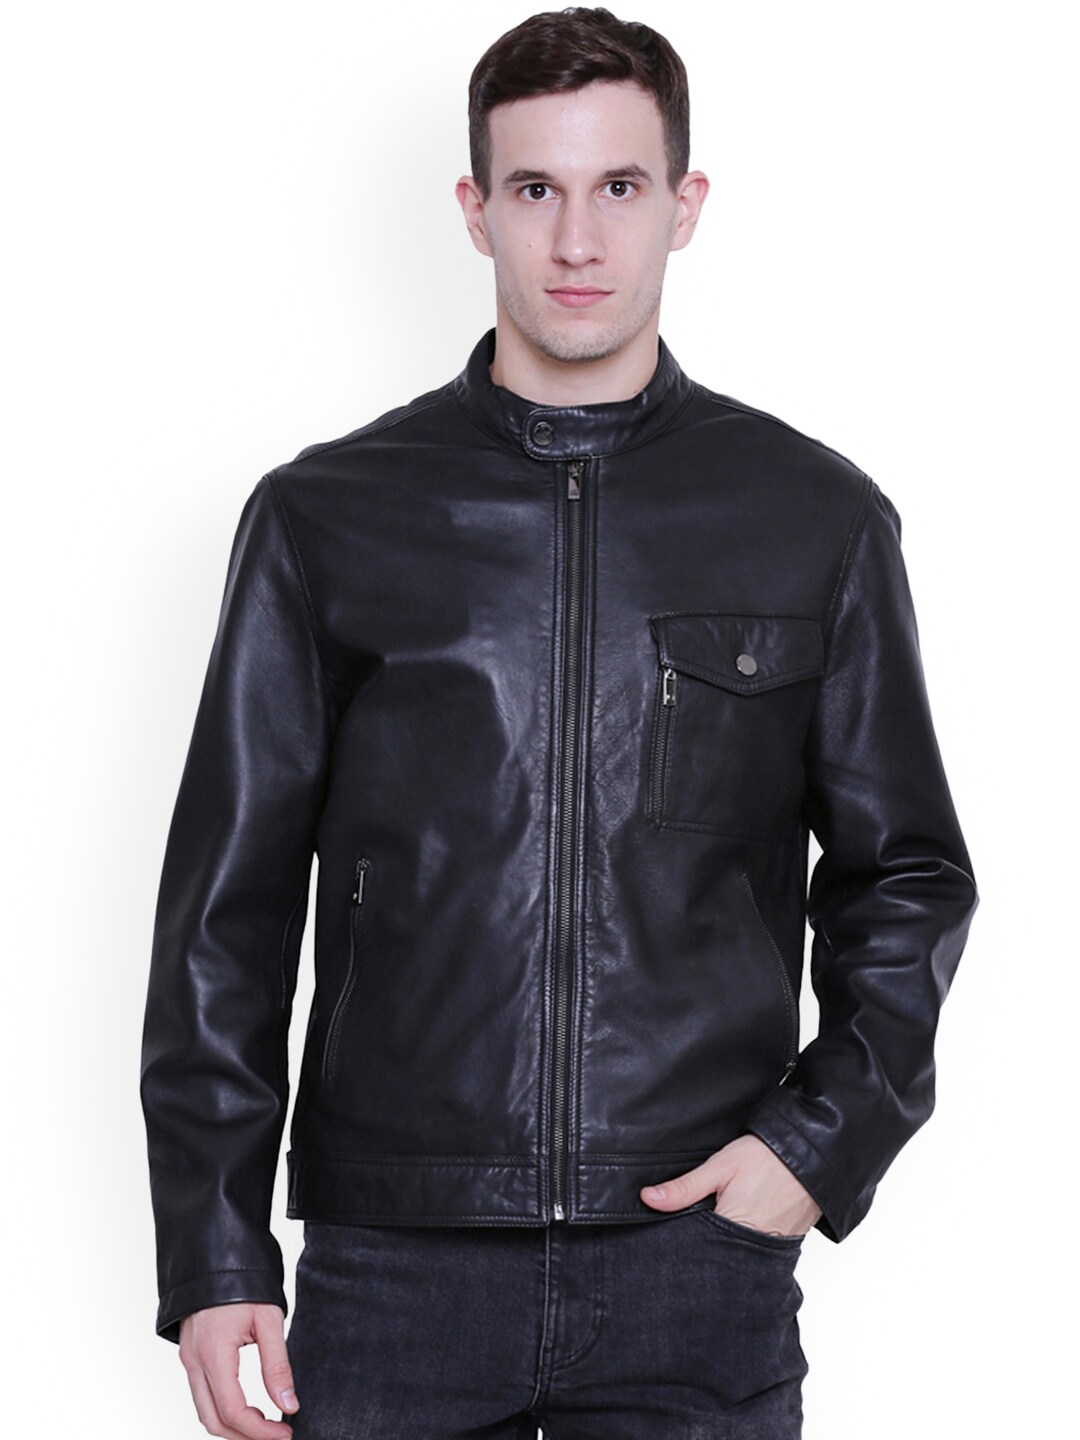 2019 year look- Leather stylish jackets online